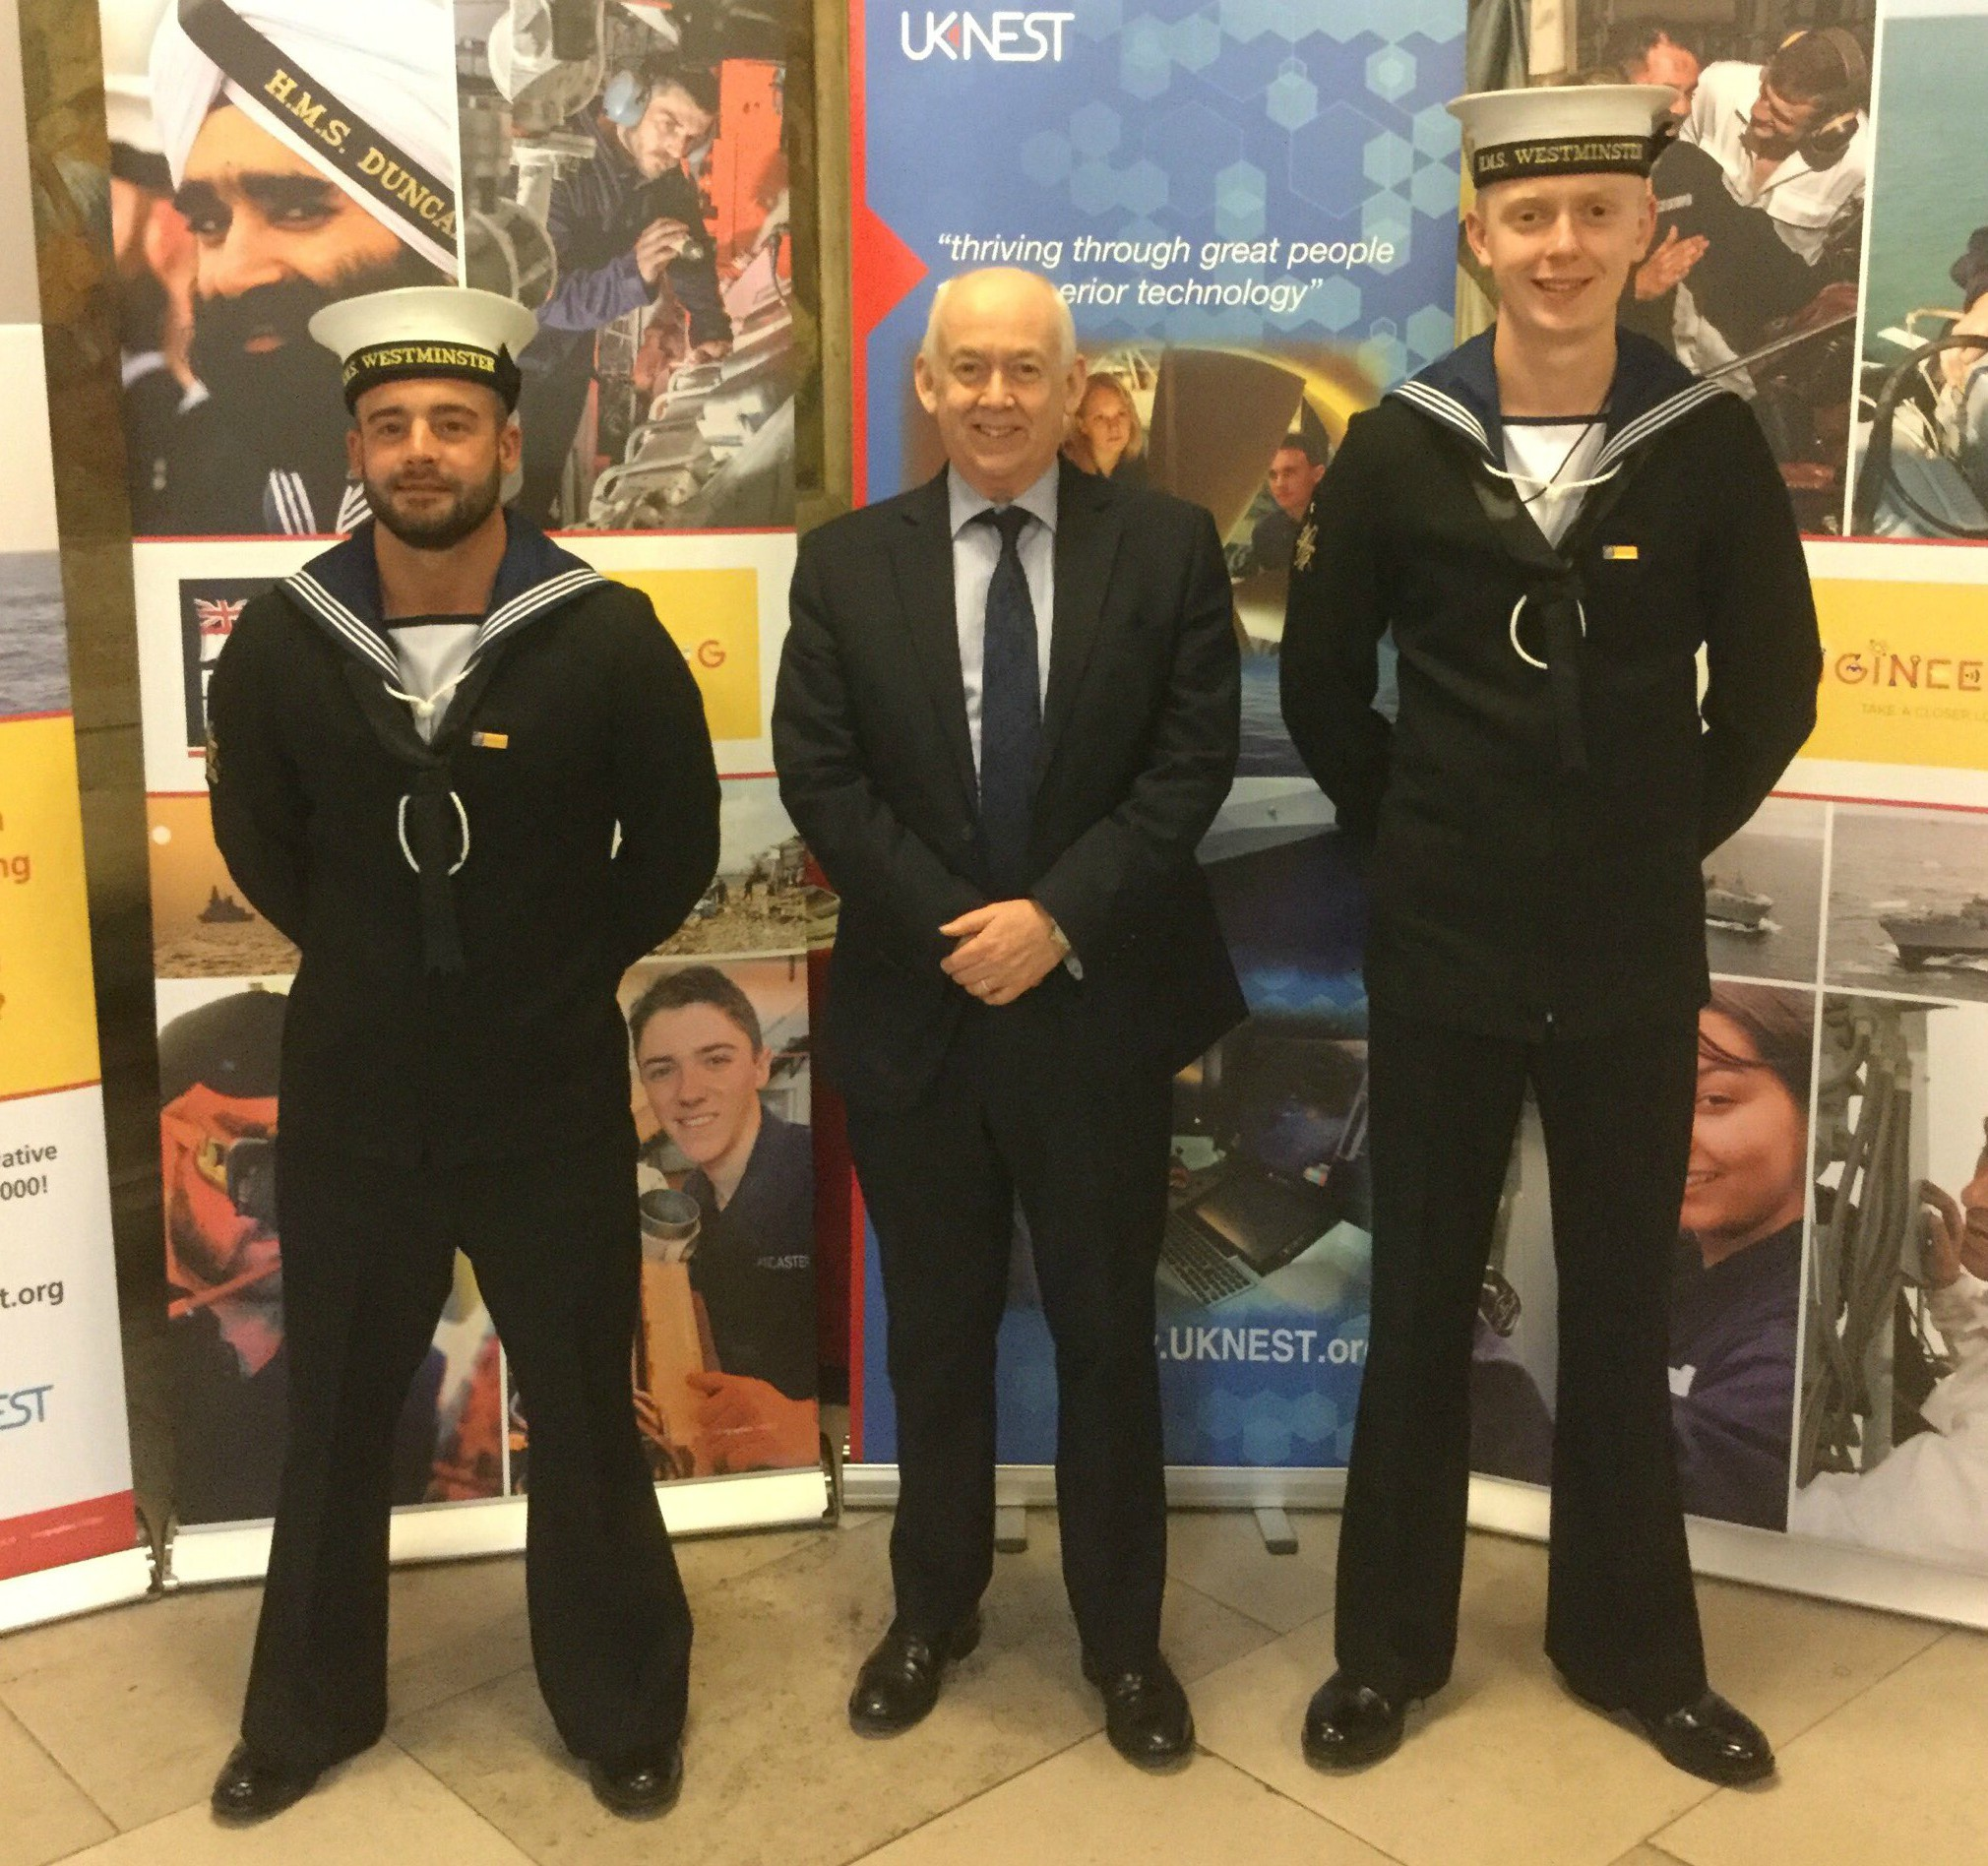 Wayne David and two members of the Royal Navy from HMS Westminster